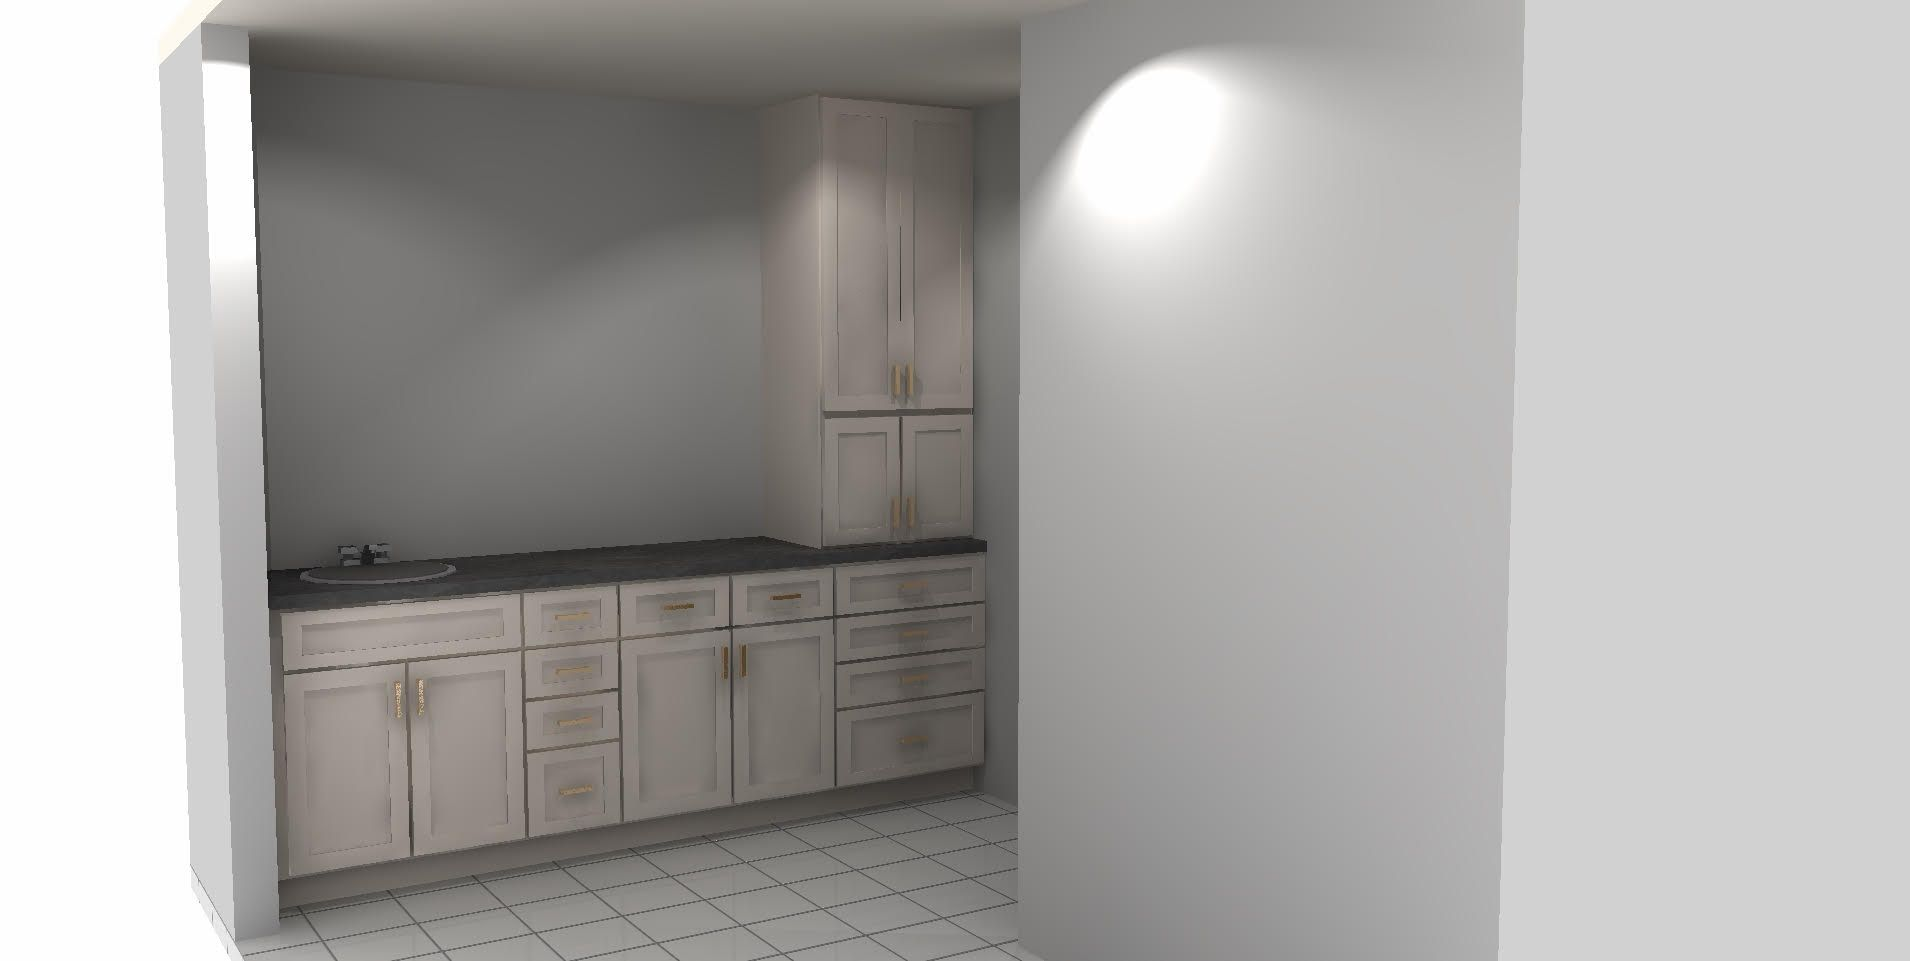 Tracey 84 Lumber provided this initial render of the master bath cabinets with garage and tower